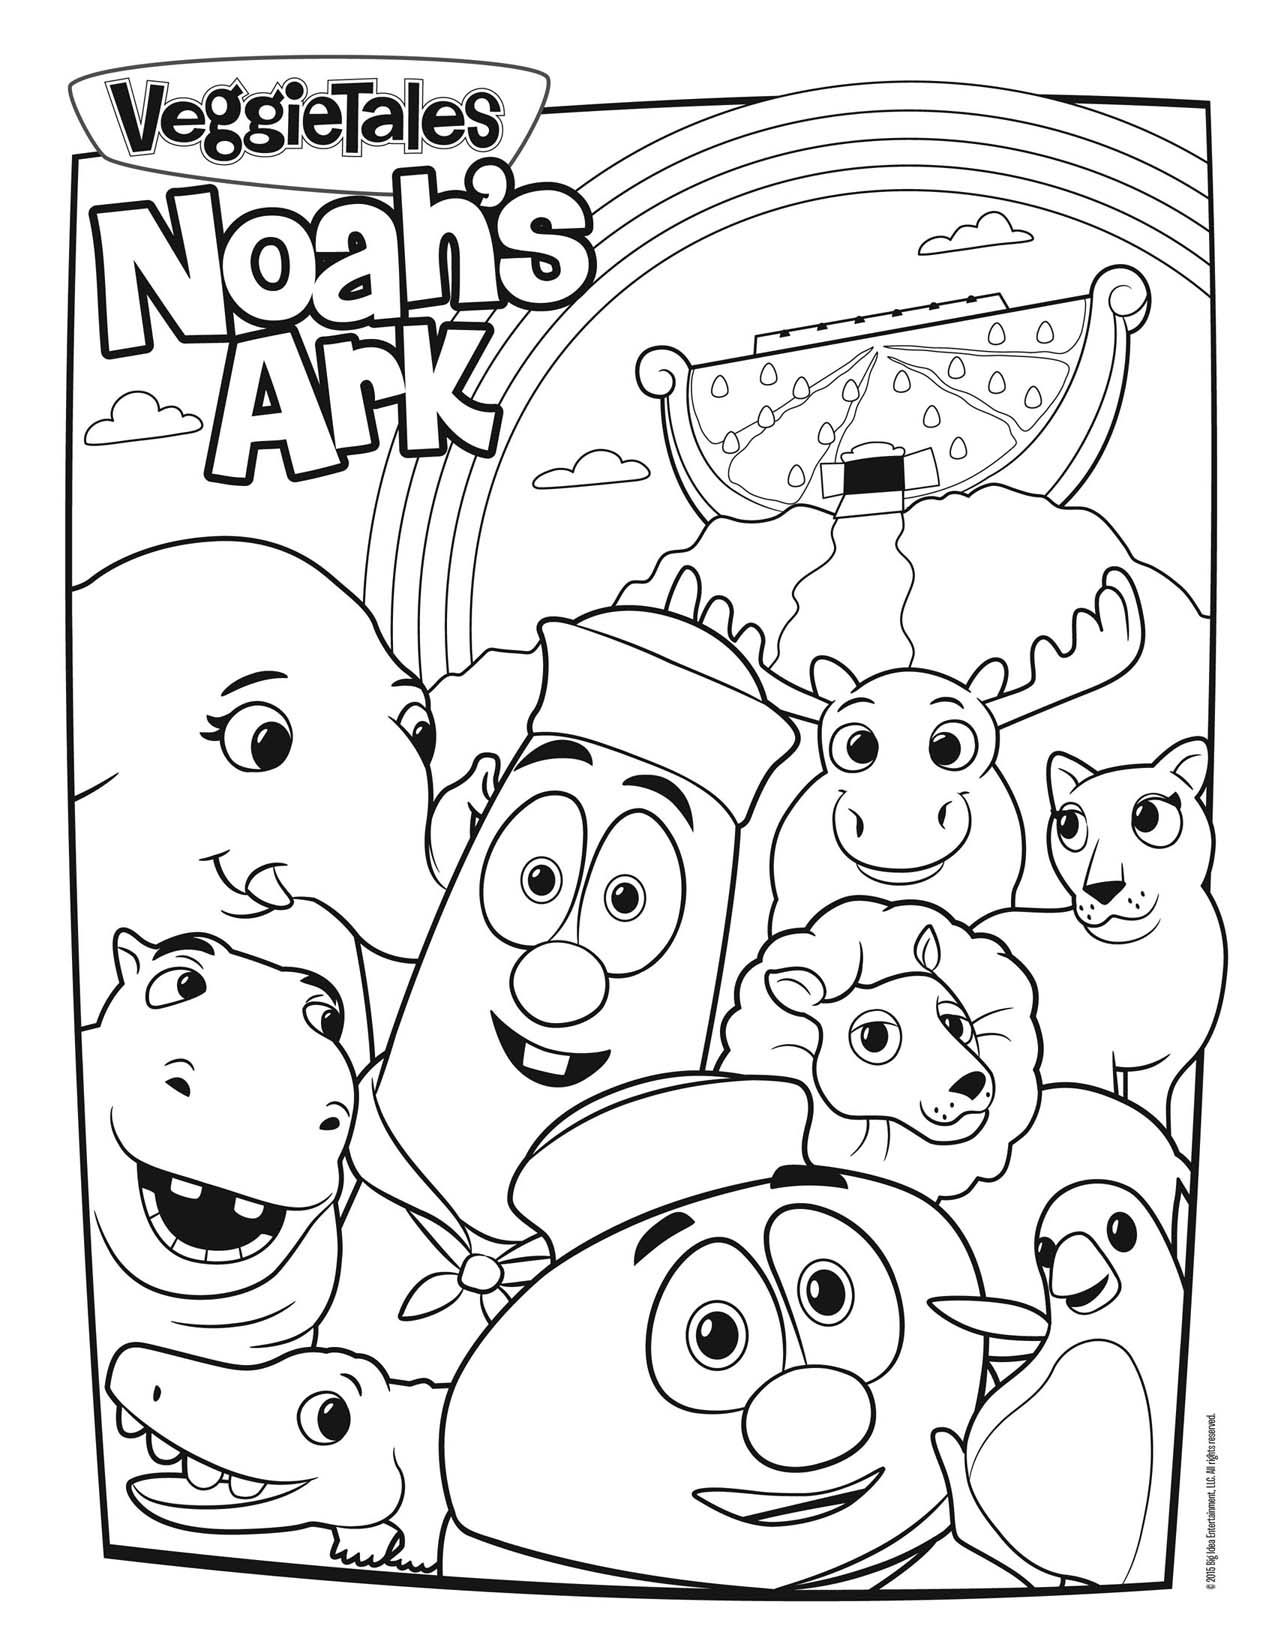 VeggieTales Noah\'s Ark Coloring Page | Toddler Tuesdays | Pinterest